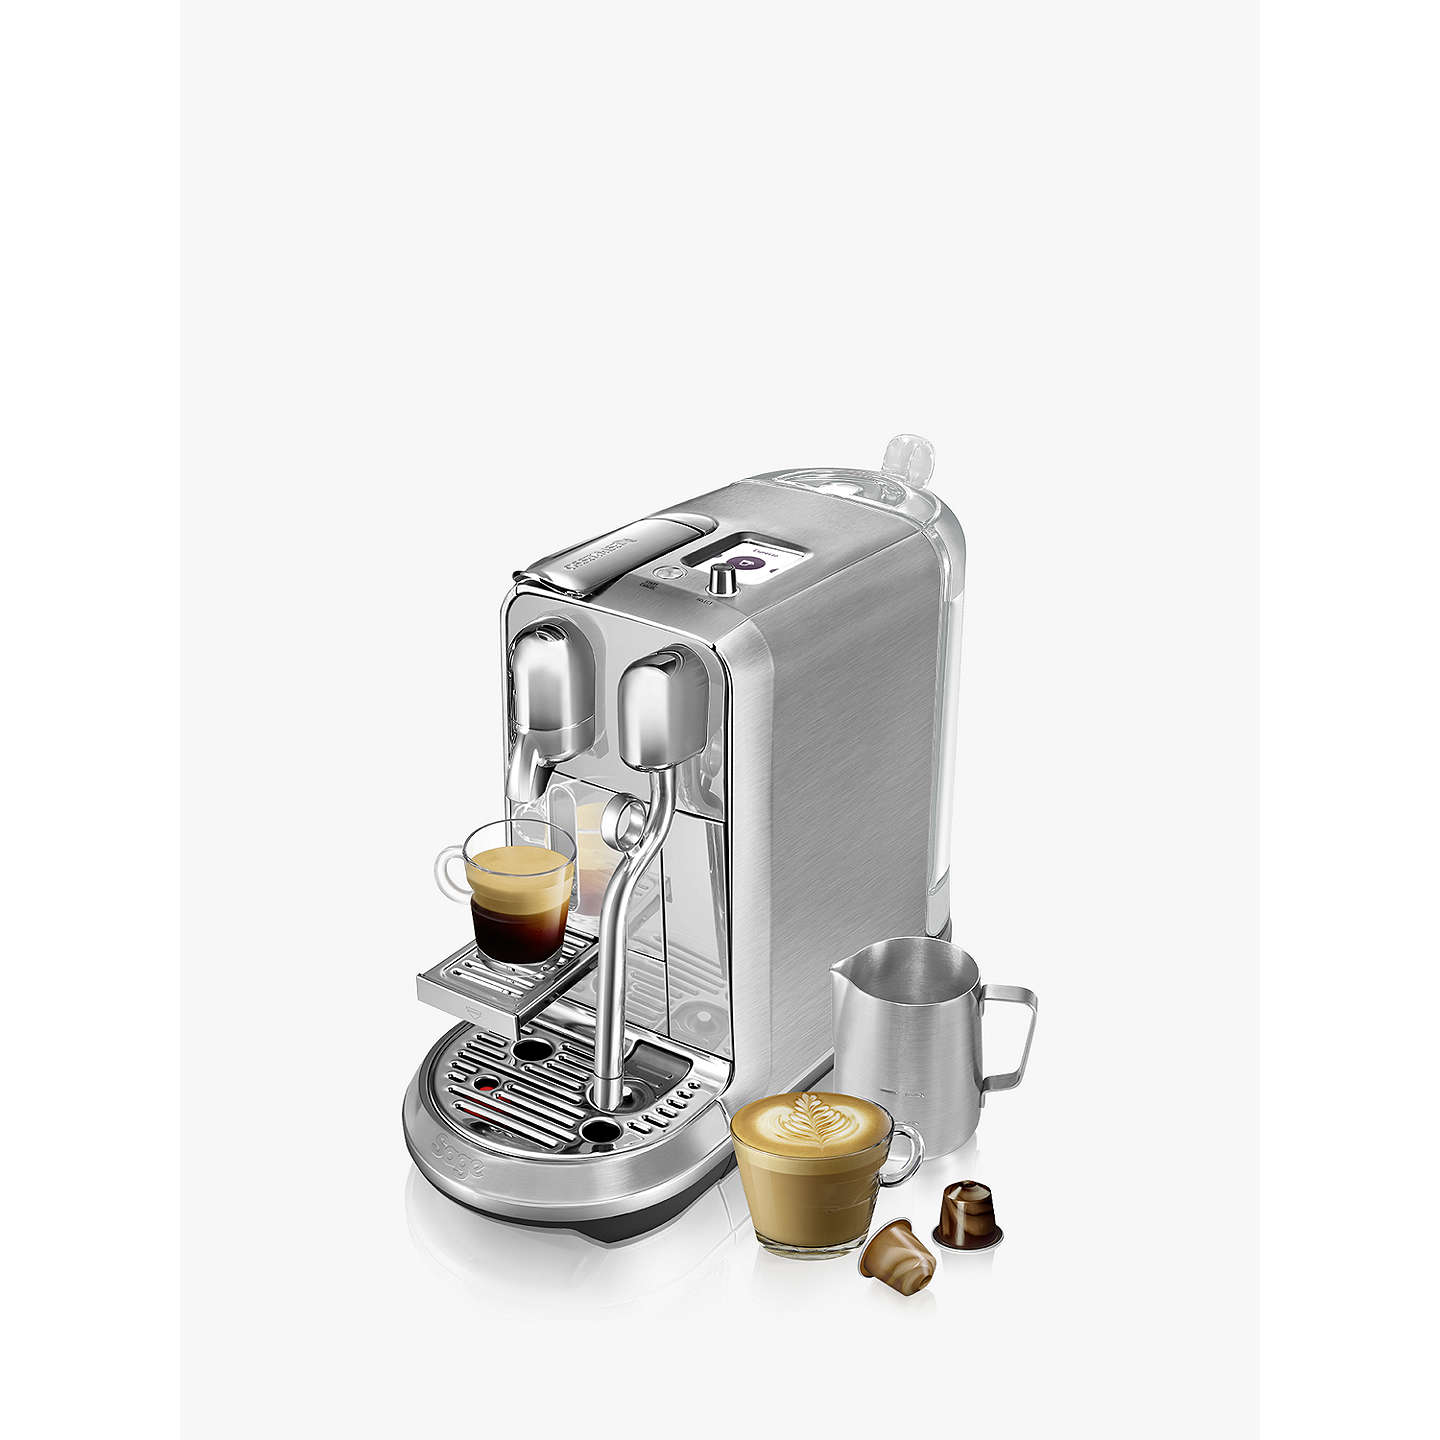 BuyNespresso Creatista Plus Coffee Machine by Sage, Stainless Steel Online at johnlewis.com